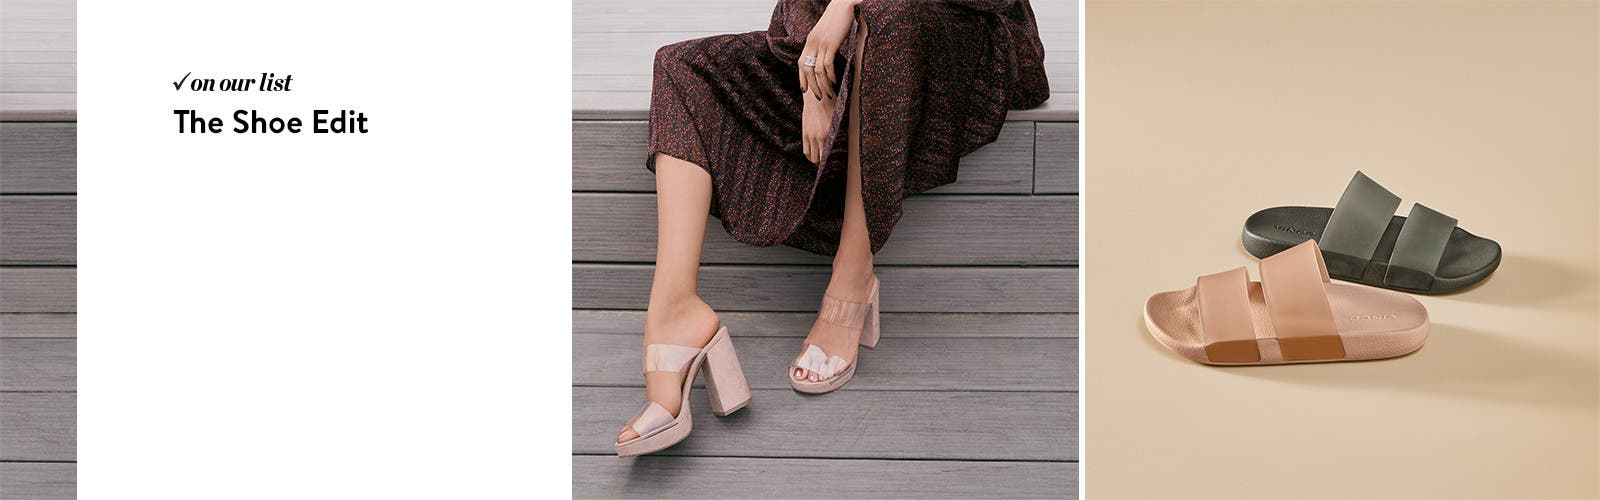 The Best Shoes Add Oomph To Your Look Without A Lot Of Effort Take Our Favorite Backless Styles Easy On Off You Re Ready For Anything